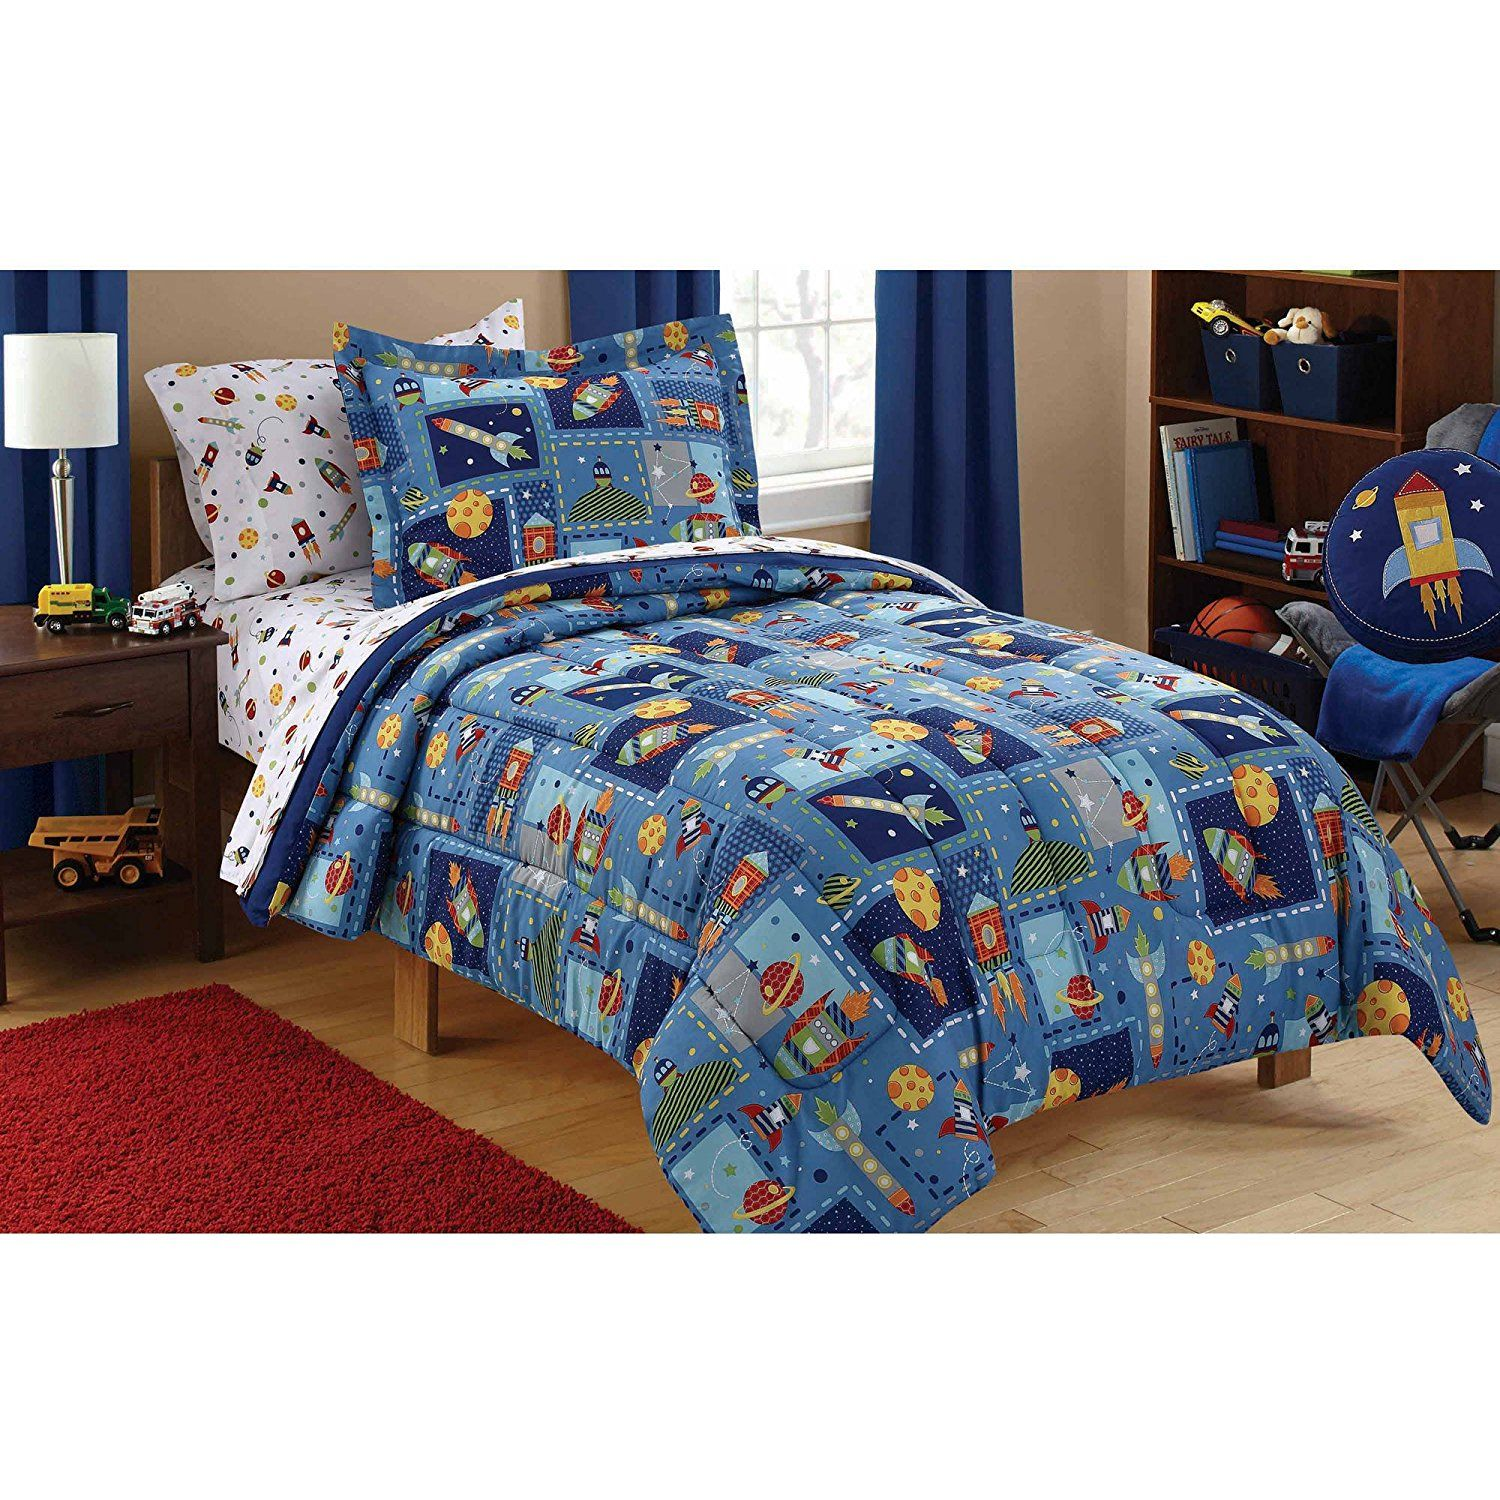 Mainstays Kids Space Bed in a Bag Bedding Set TWIN